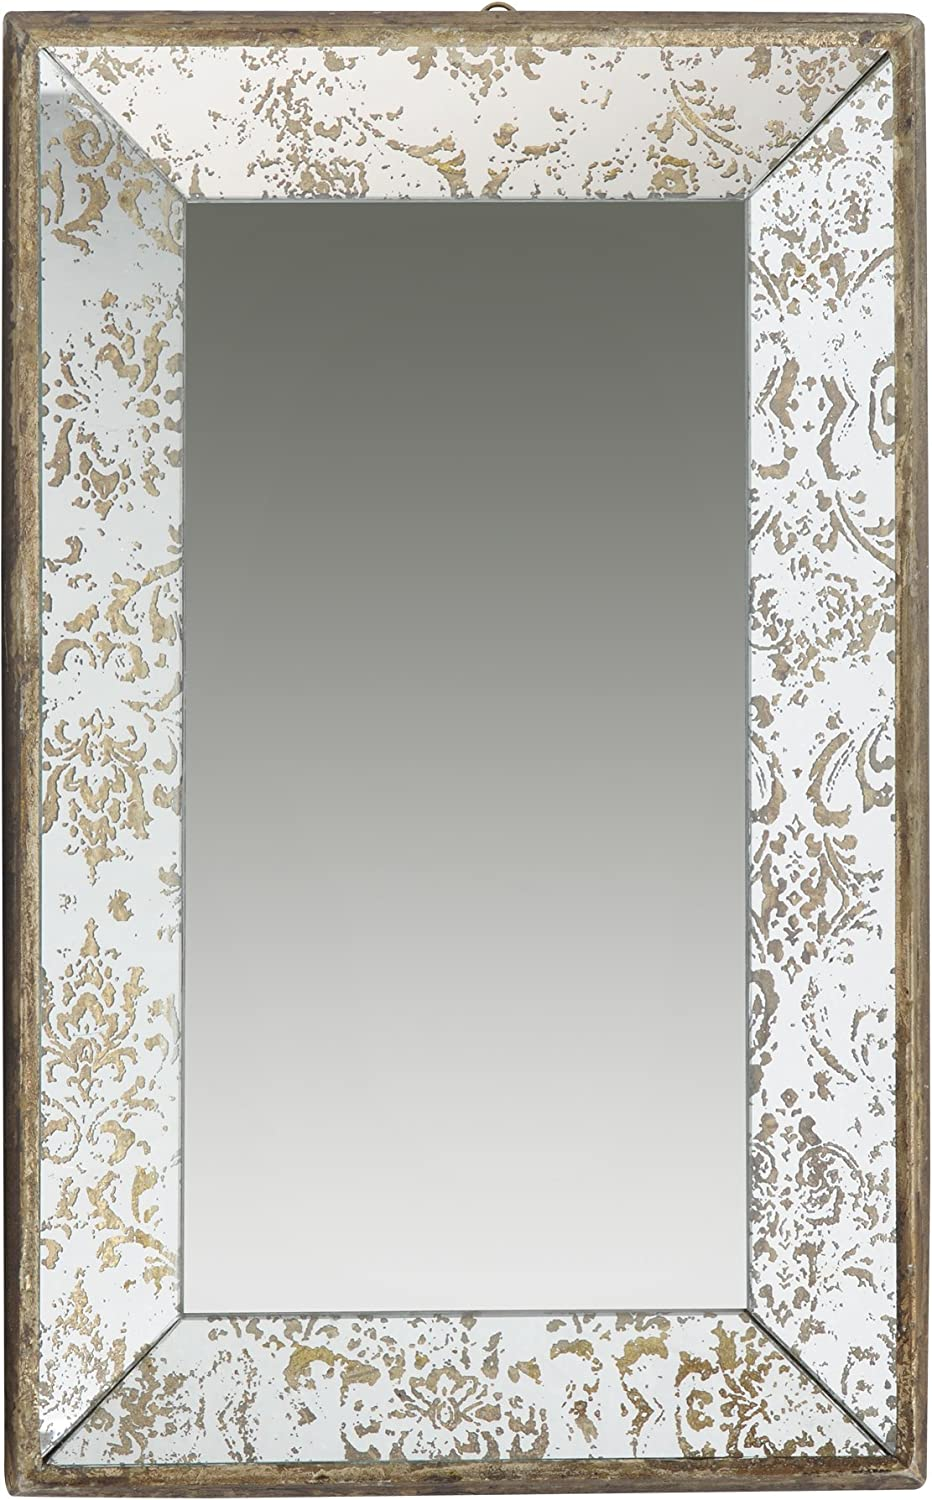 A&B Home, 20 by 12-Inch Antique Style Frameless Wall Mirror Tray